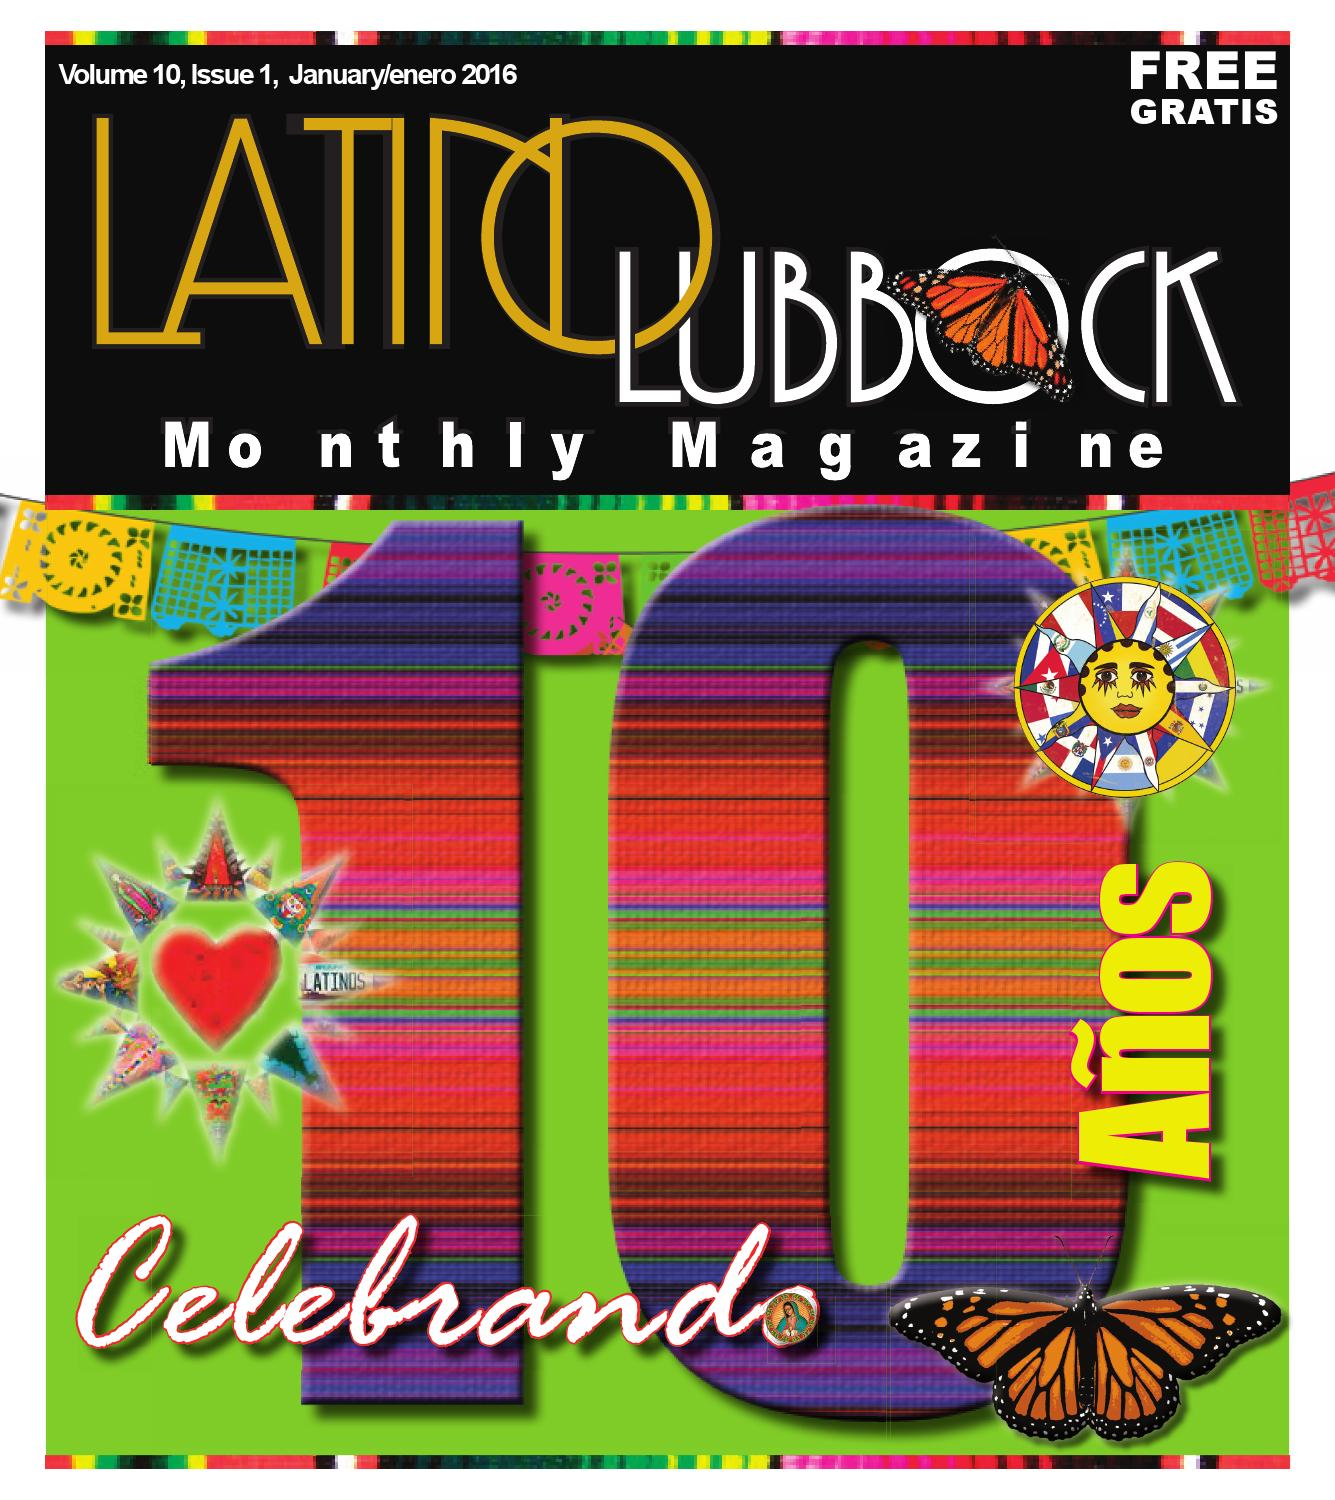 January latino lubbock vol 10 issue 1 by christy martinez garcia january latino lubbock vol 10 issue 1 by christy martinez garcia issuu aiddatafo Gallery